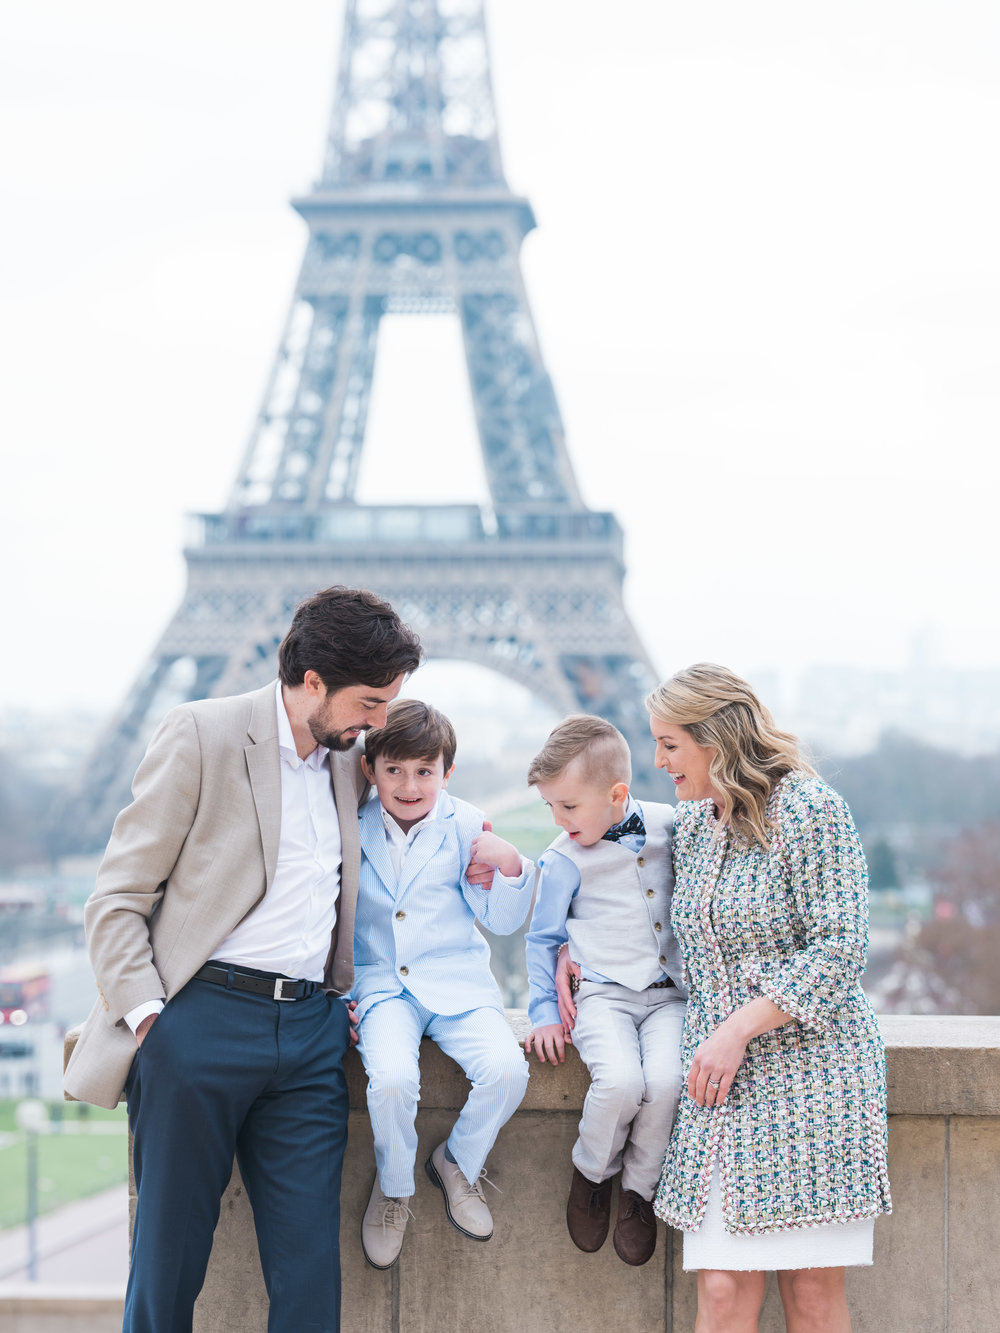 family photo session at the eiffel tower in paris france